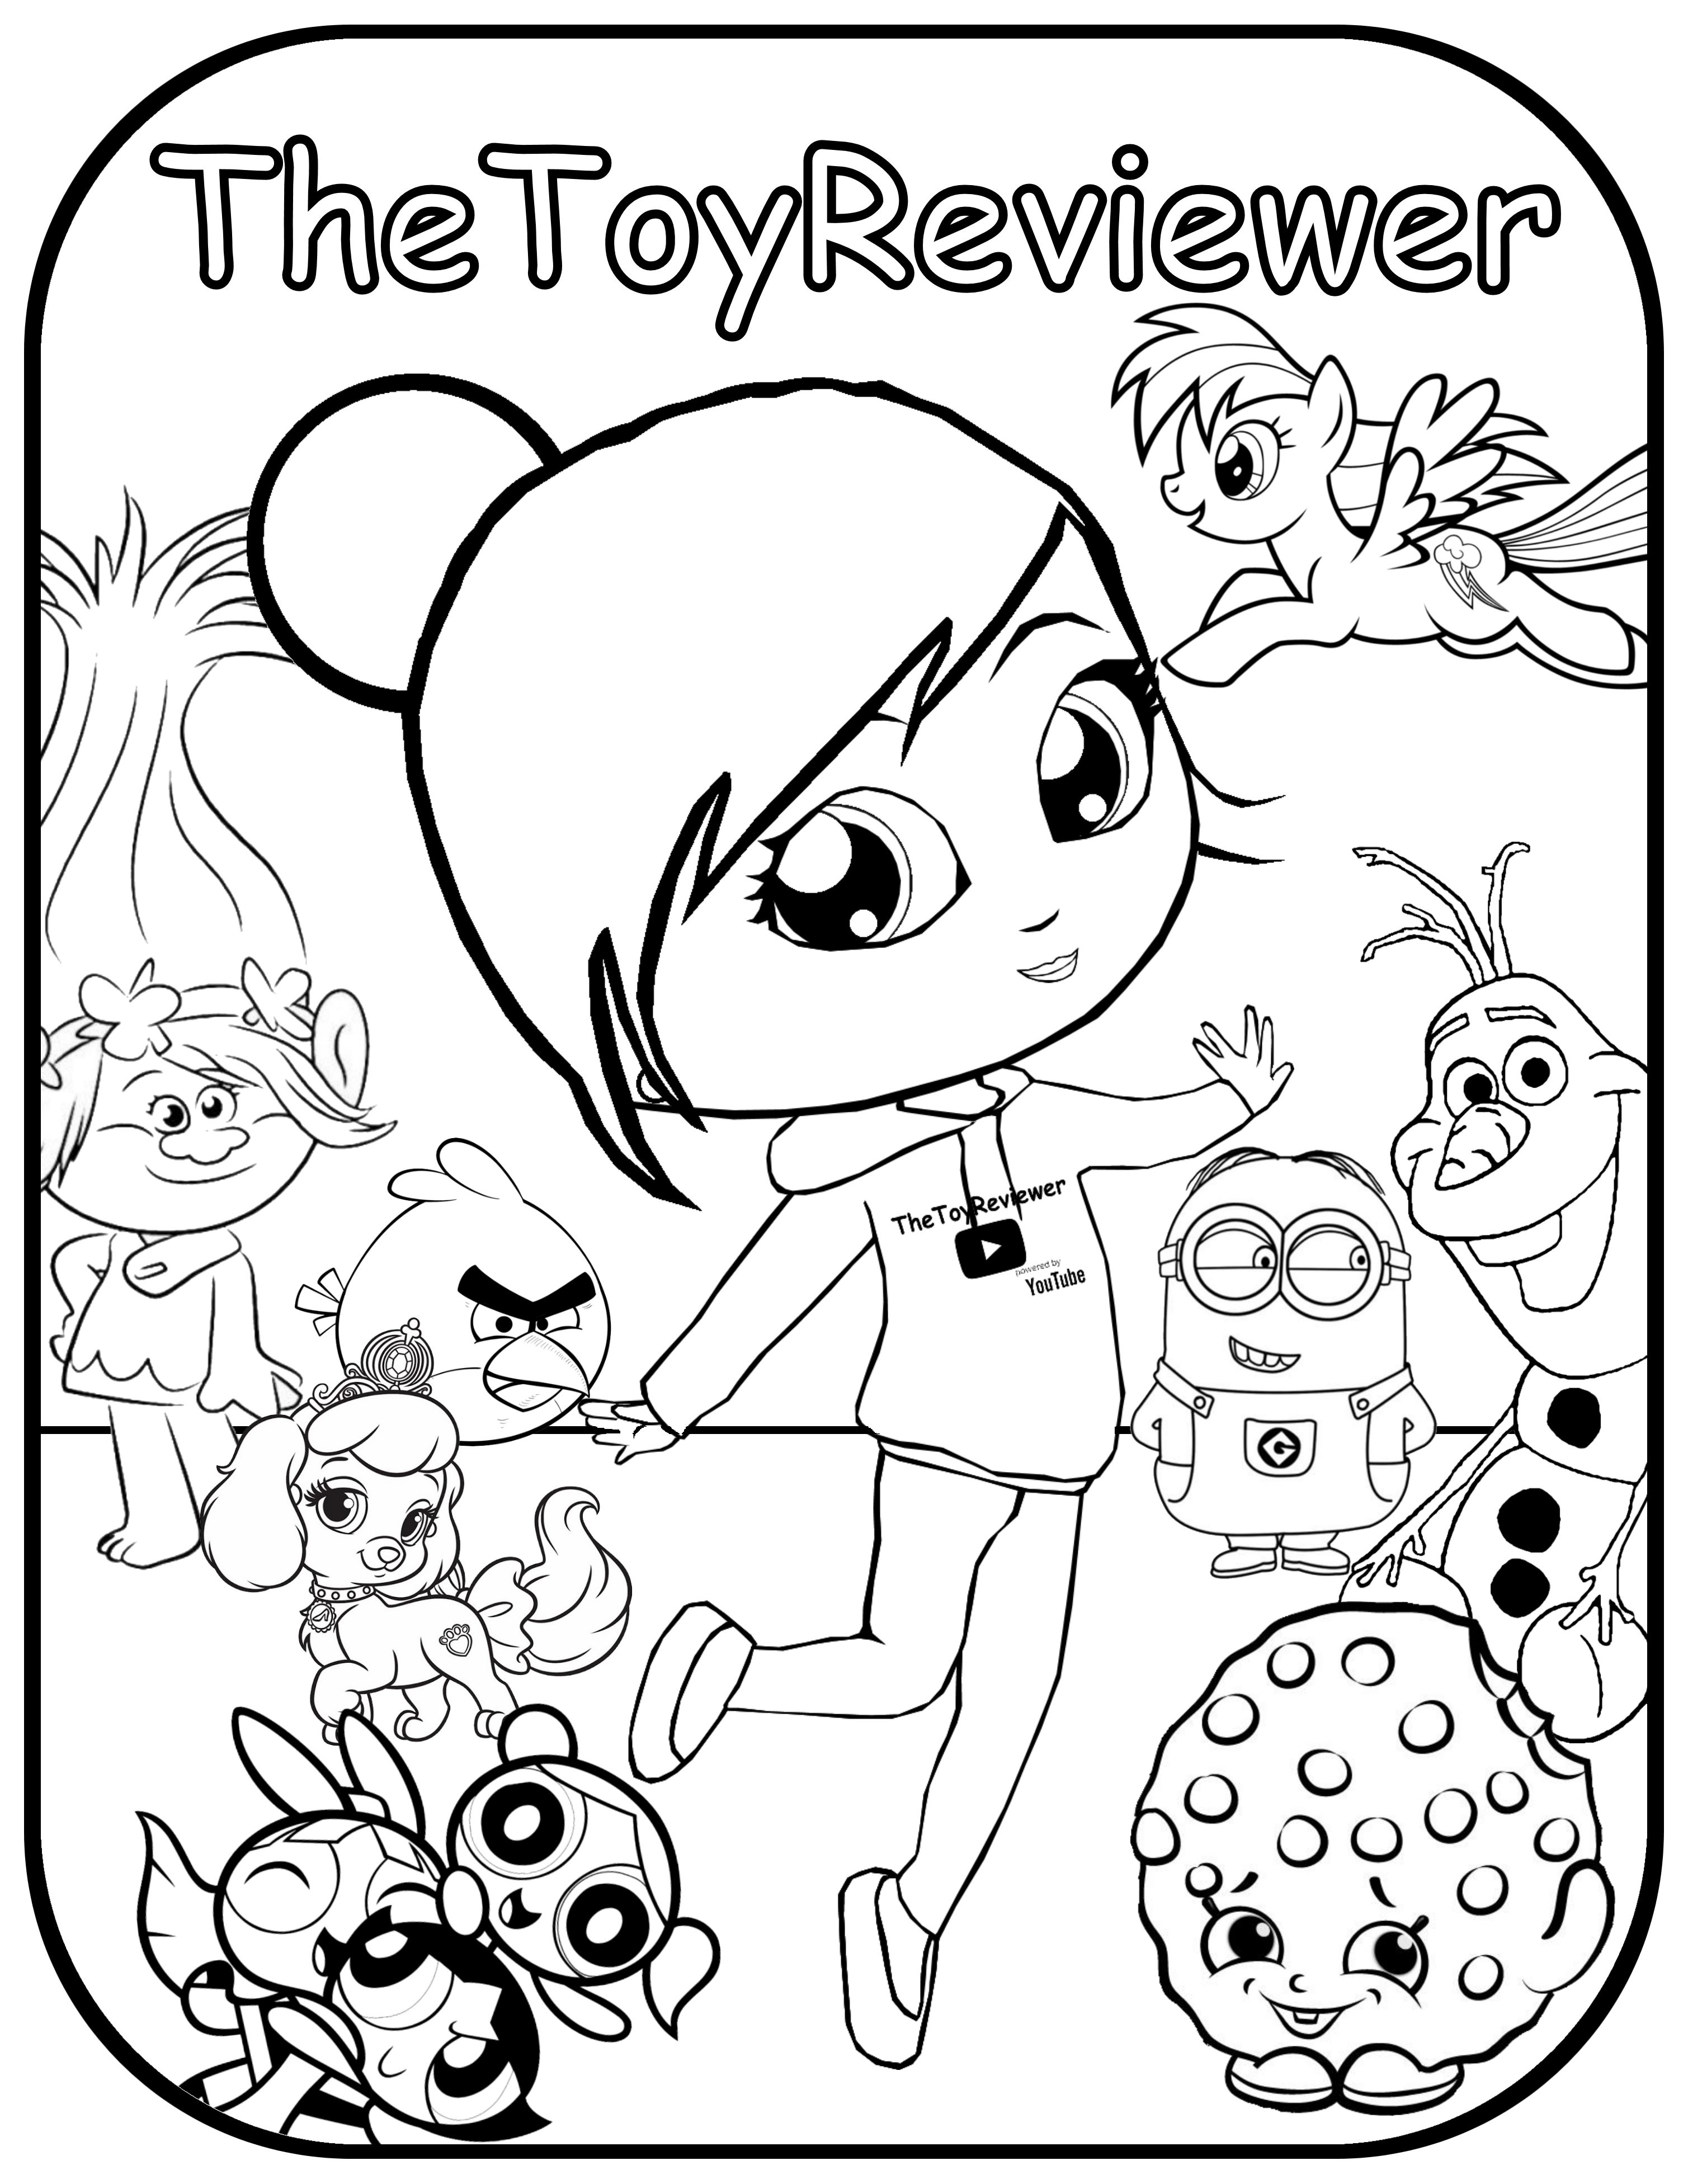 coloring pages youtube coloringbuddymike garbage truck coloring pages youtube pages youtube coloring